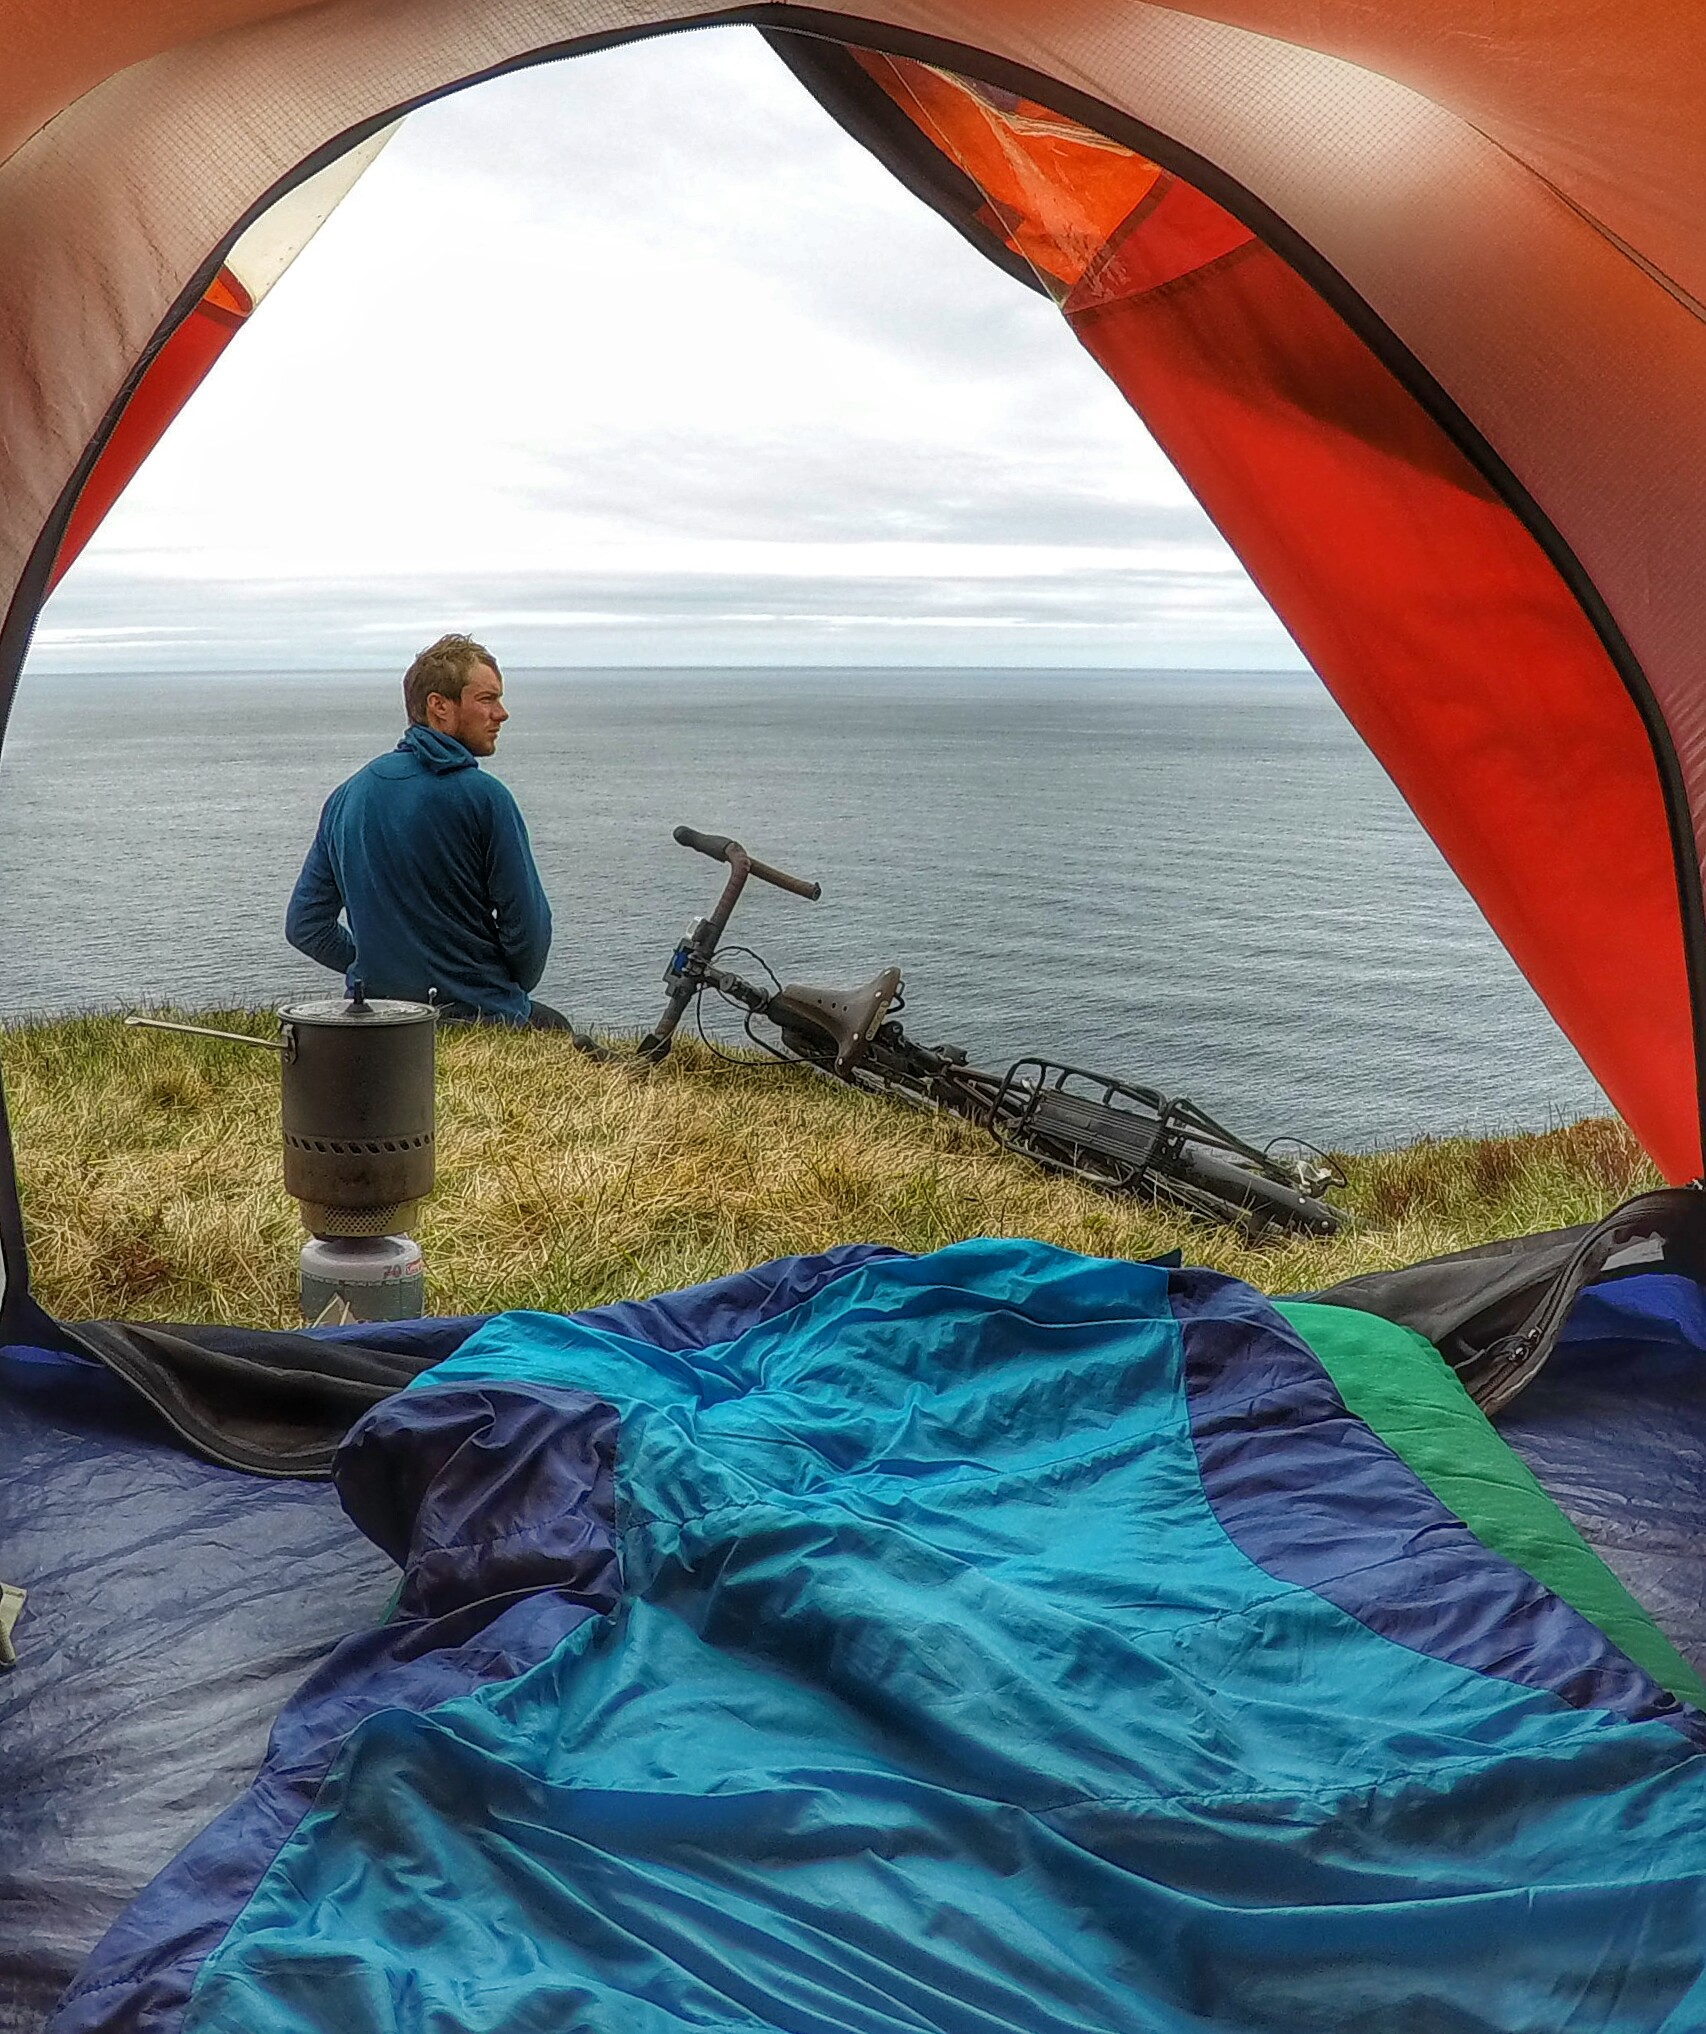 Cycled around Iceland without music, books, internet, or any real intentions on solving any self issues, goals, aspirations, or anything. I just wanted to ride my bike and look around. I did just that and after the 16 days of doing so, I didn't want it to end. Camped here at 66.2°N. The arctic circle is at 66.5°N.